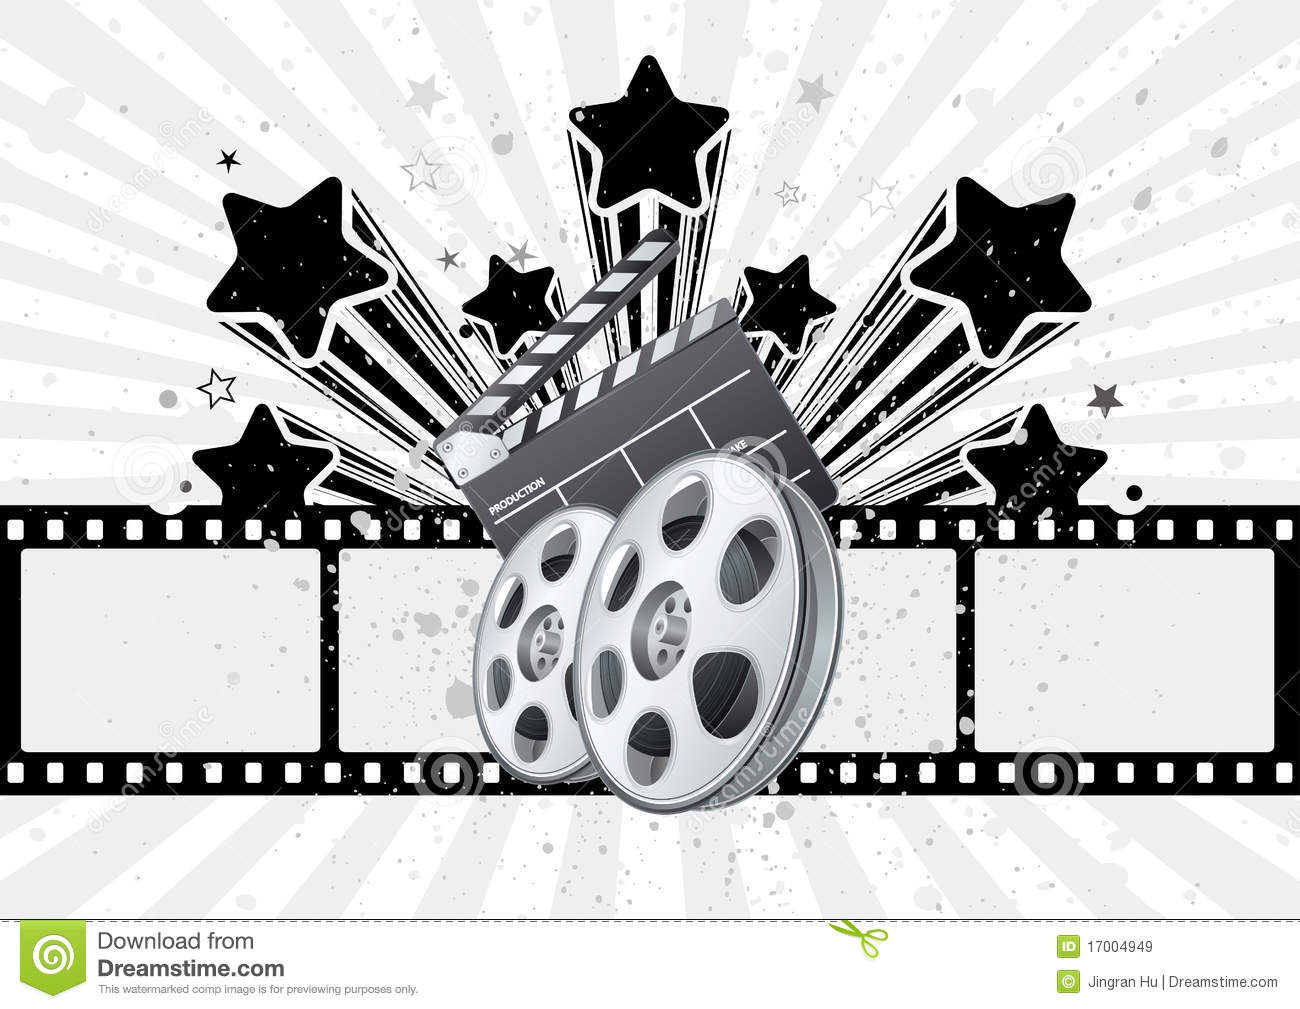 File Film strip as well Give Clients Red Carpet Service moreover Snoopy Animated Stickers besides Imagem De Stock Royalty Free Pipoca Dos Desenhos Animados Image19605326 moreover Circus Fire Breather Clipart. on movie night clip art free